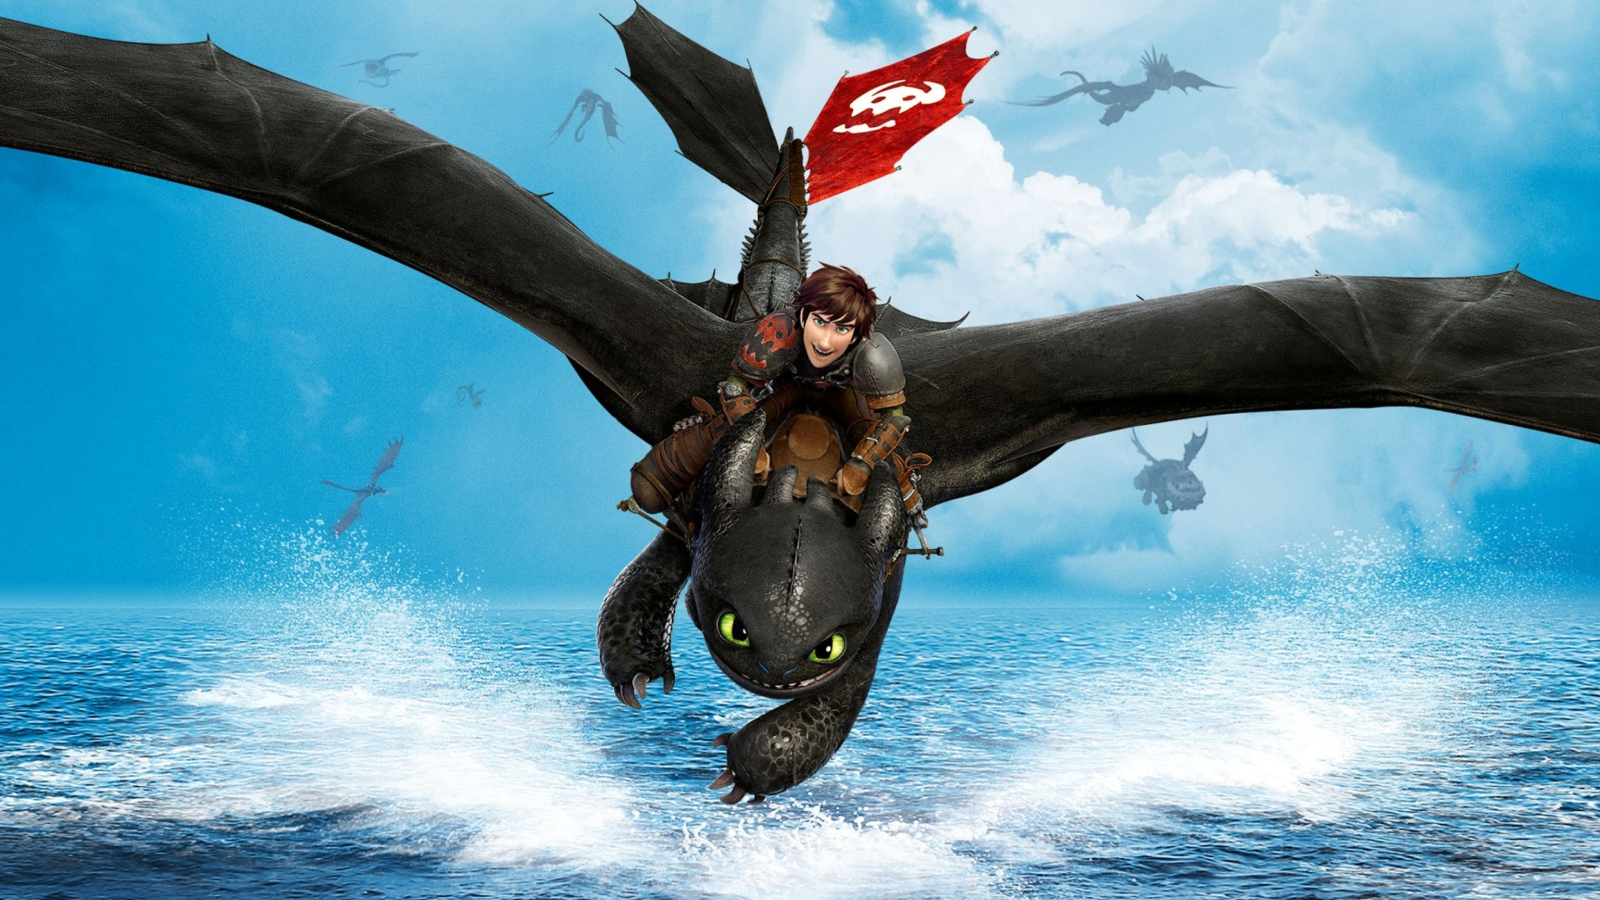 Pictures of the dragons in how to train your dragon